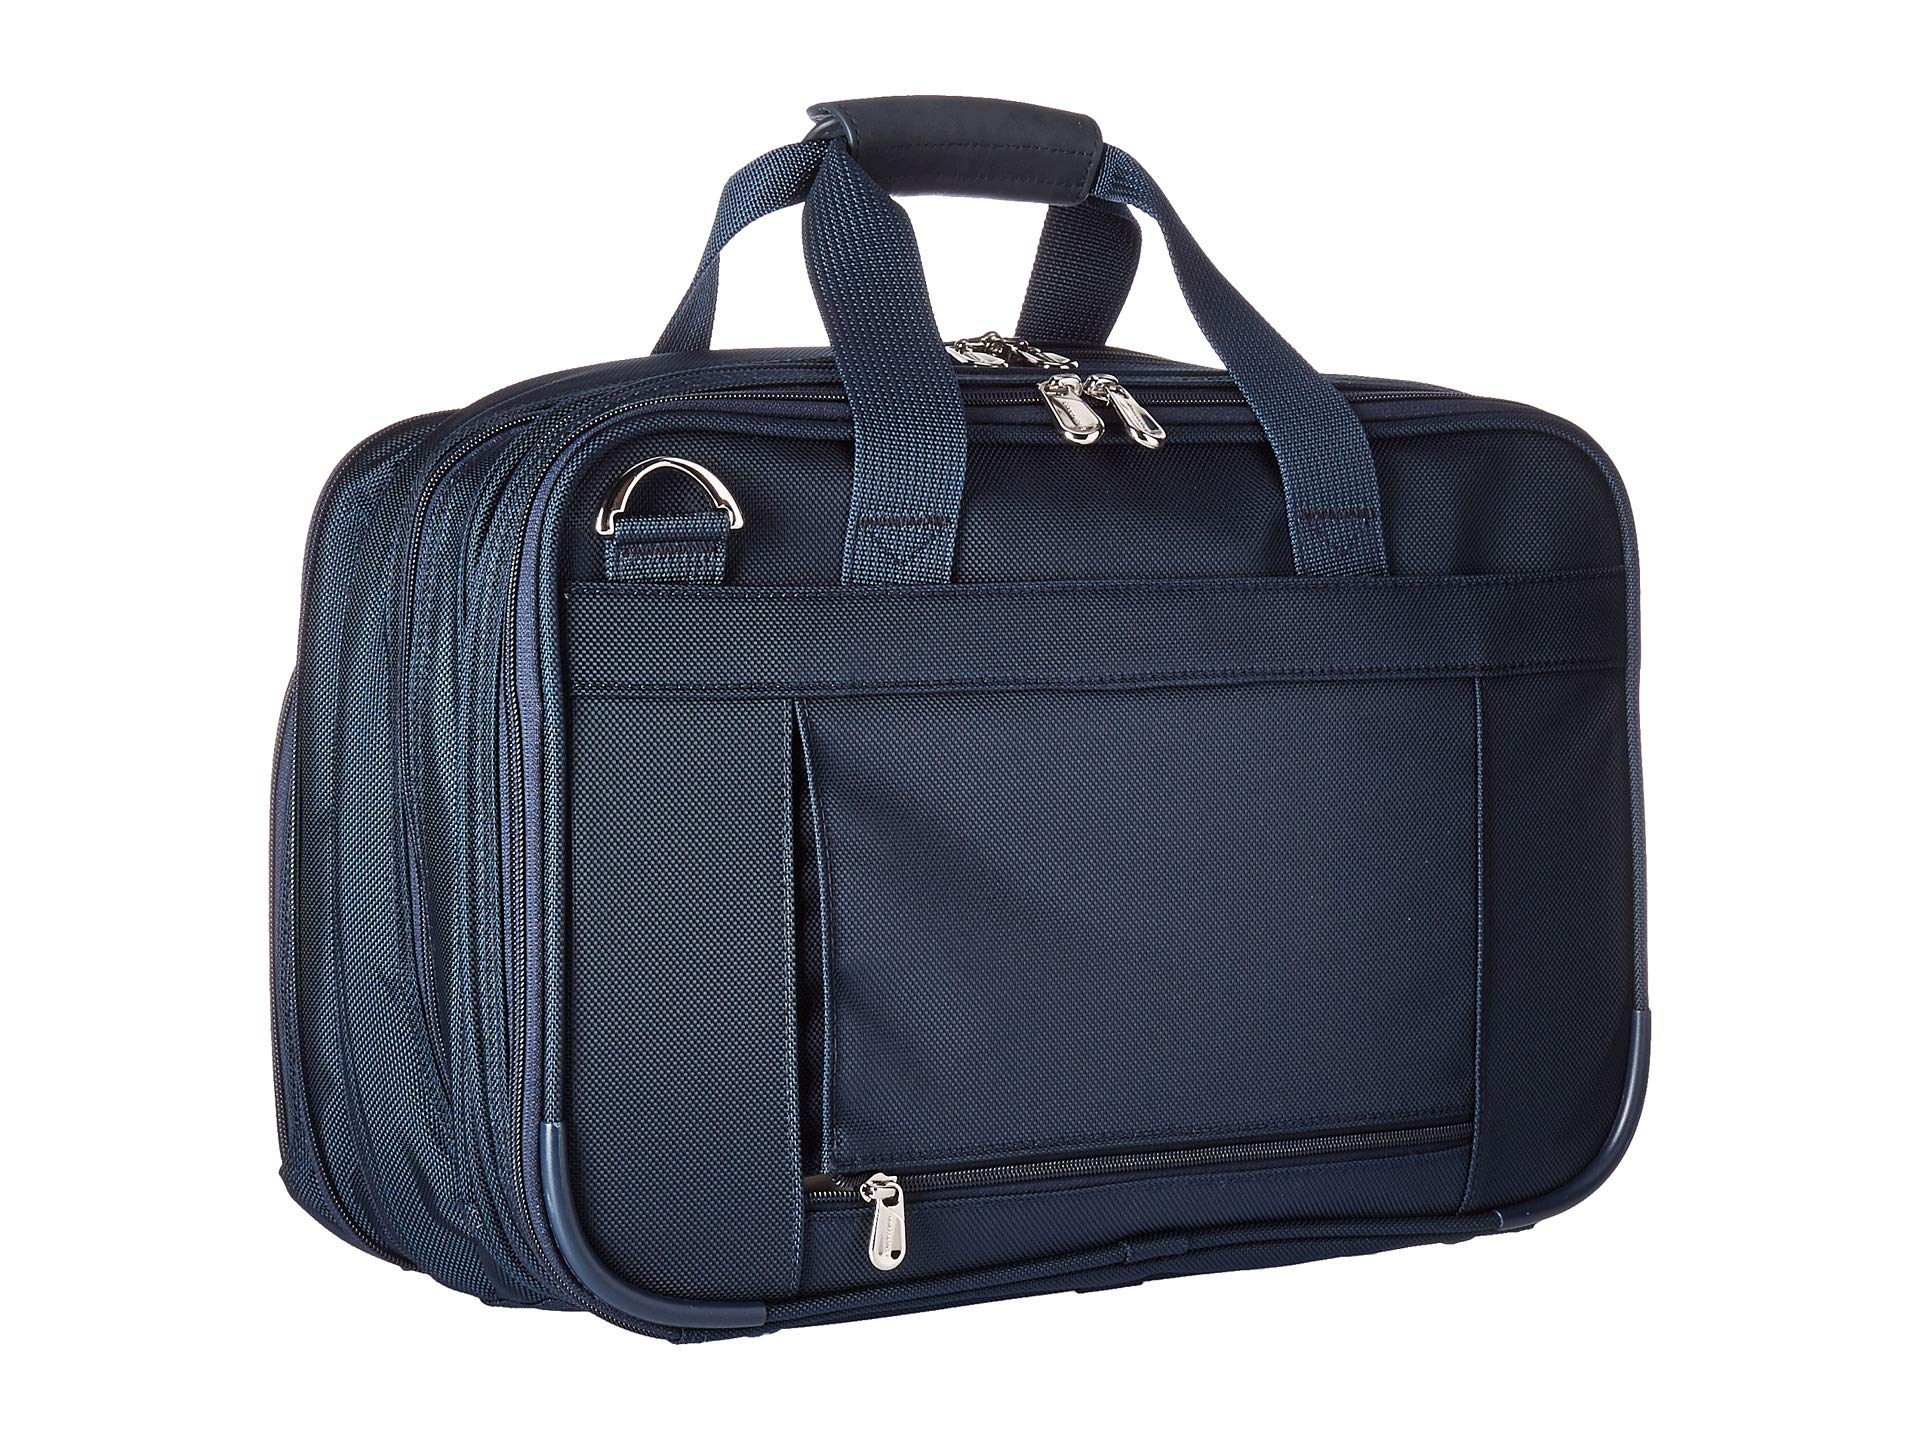 Navy Expandable Bag Briggs Cabin Riley amp; Baseline wxY78zU